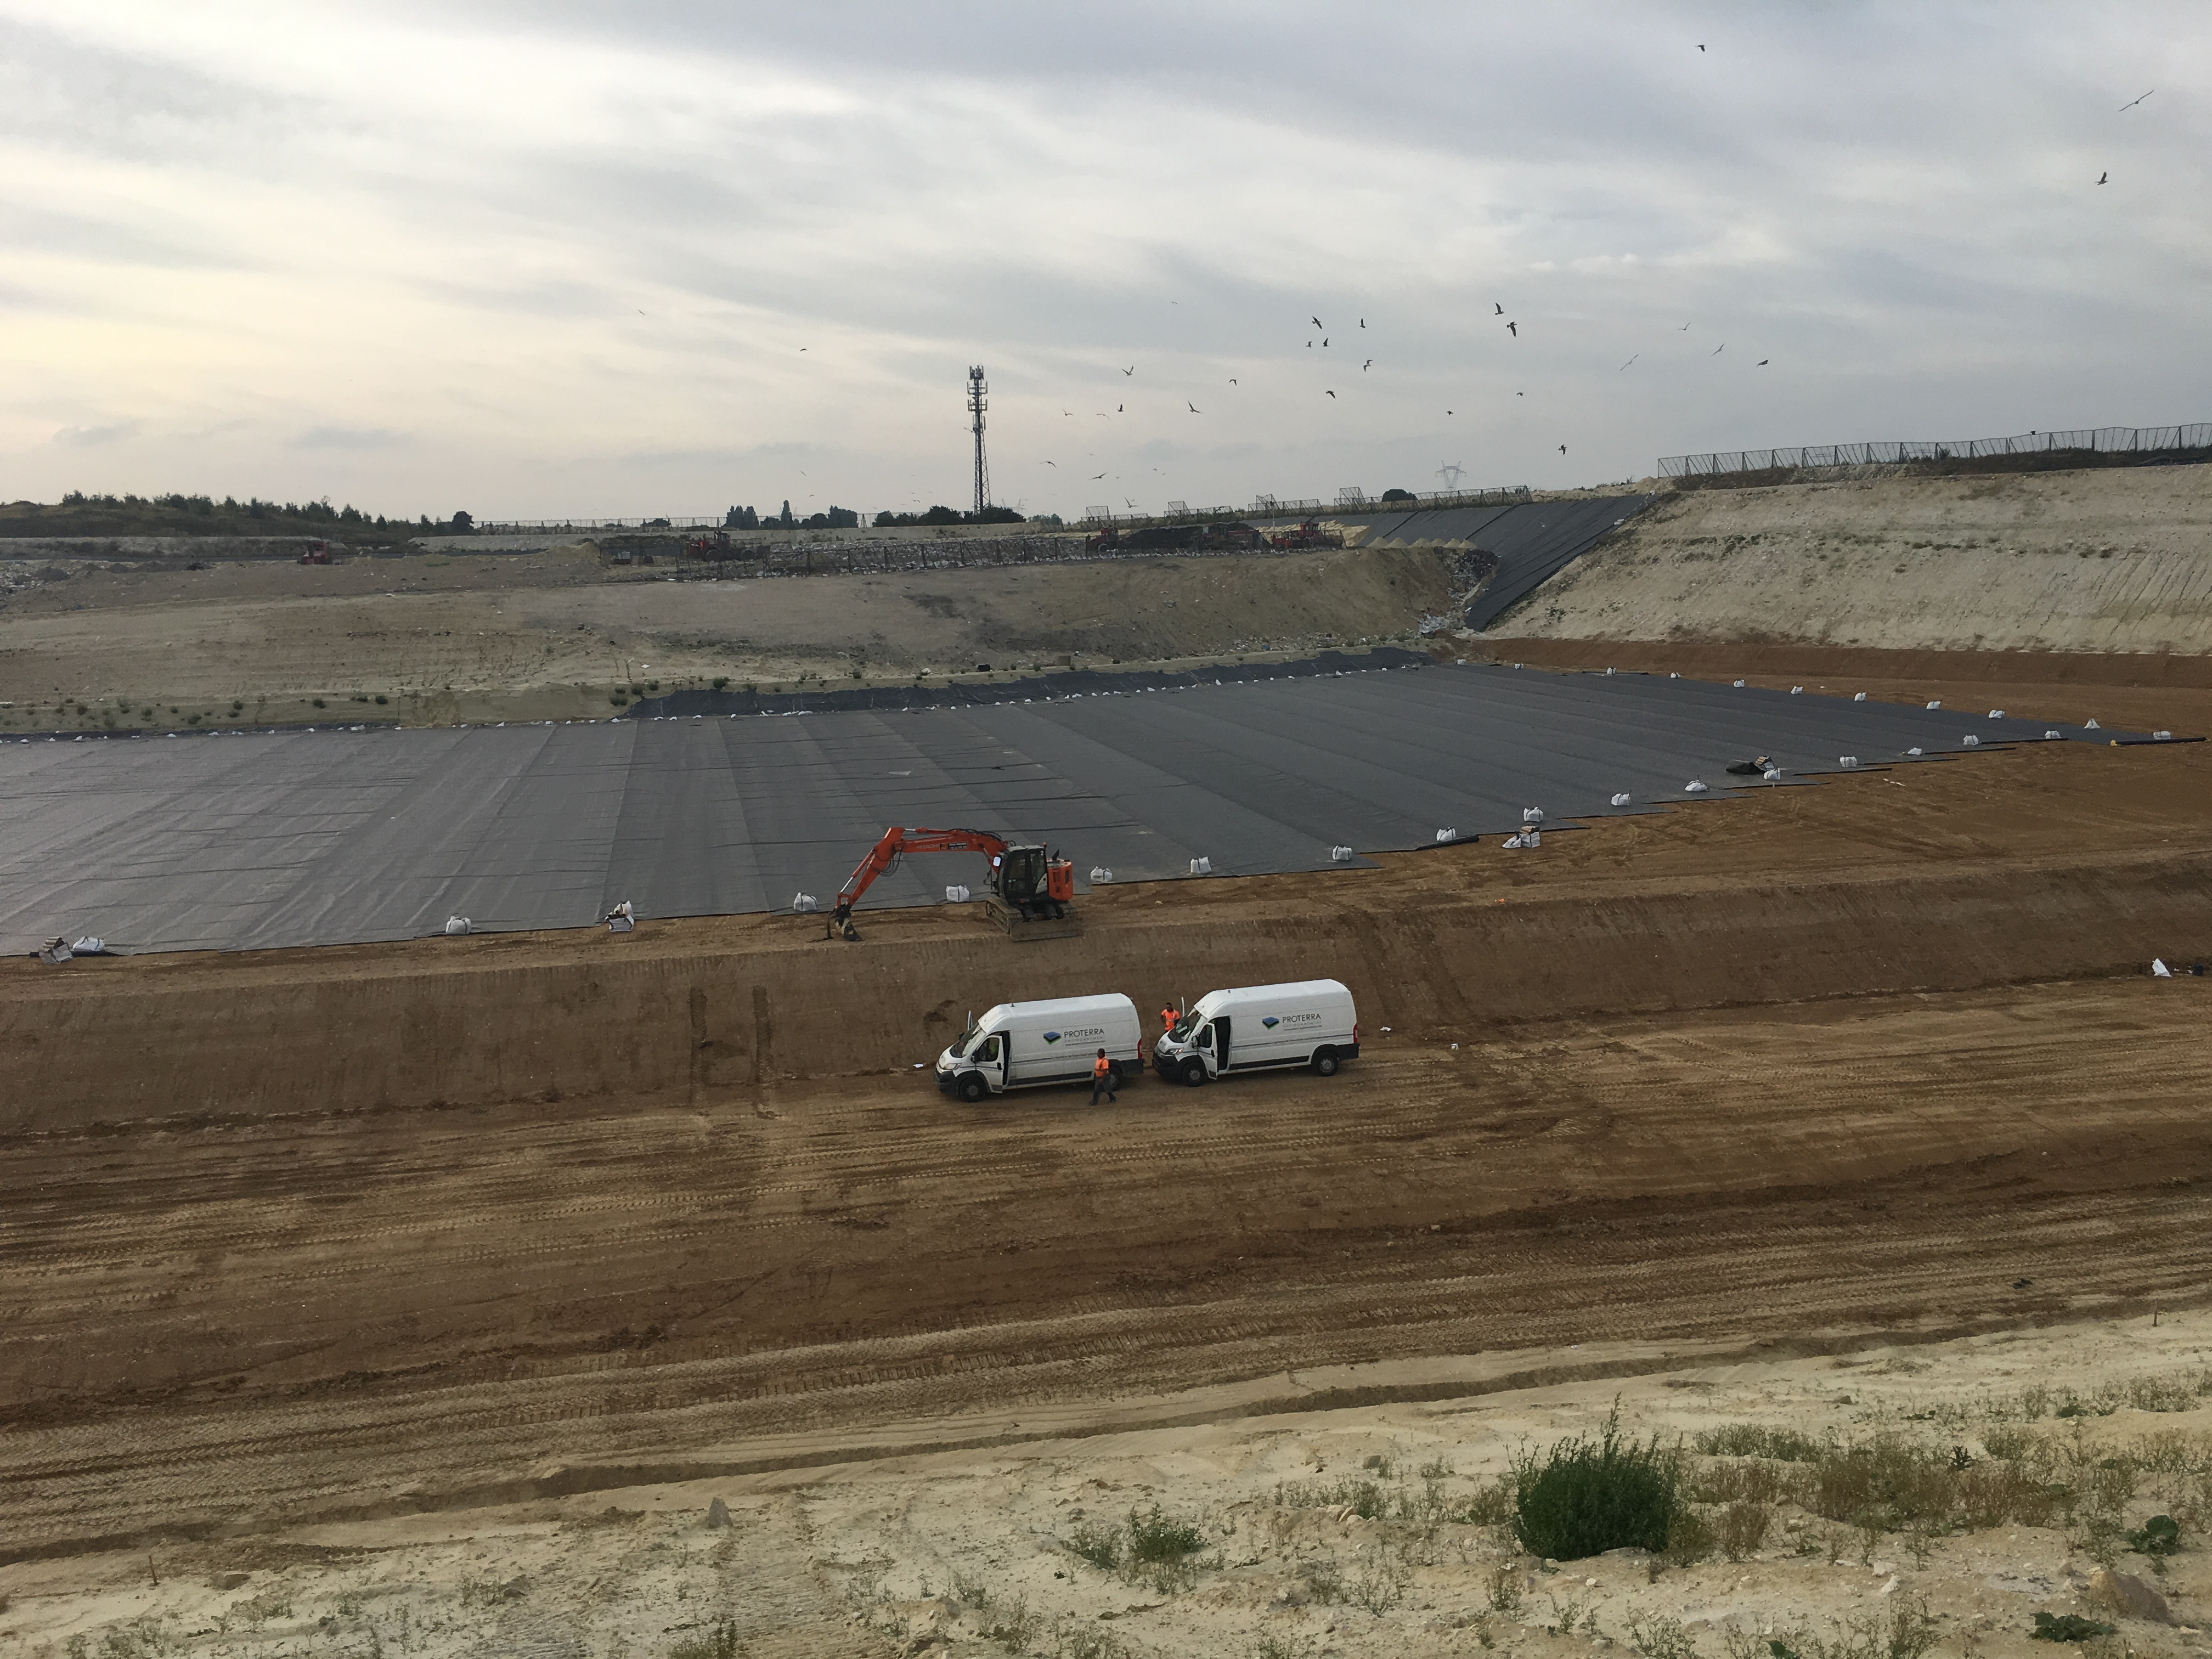 CASIER ISD GEOMEMBRANE C13-2